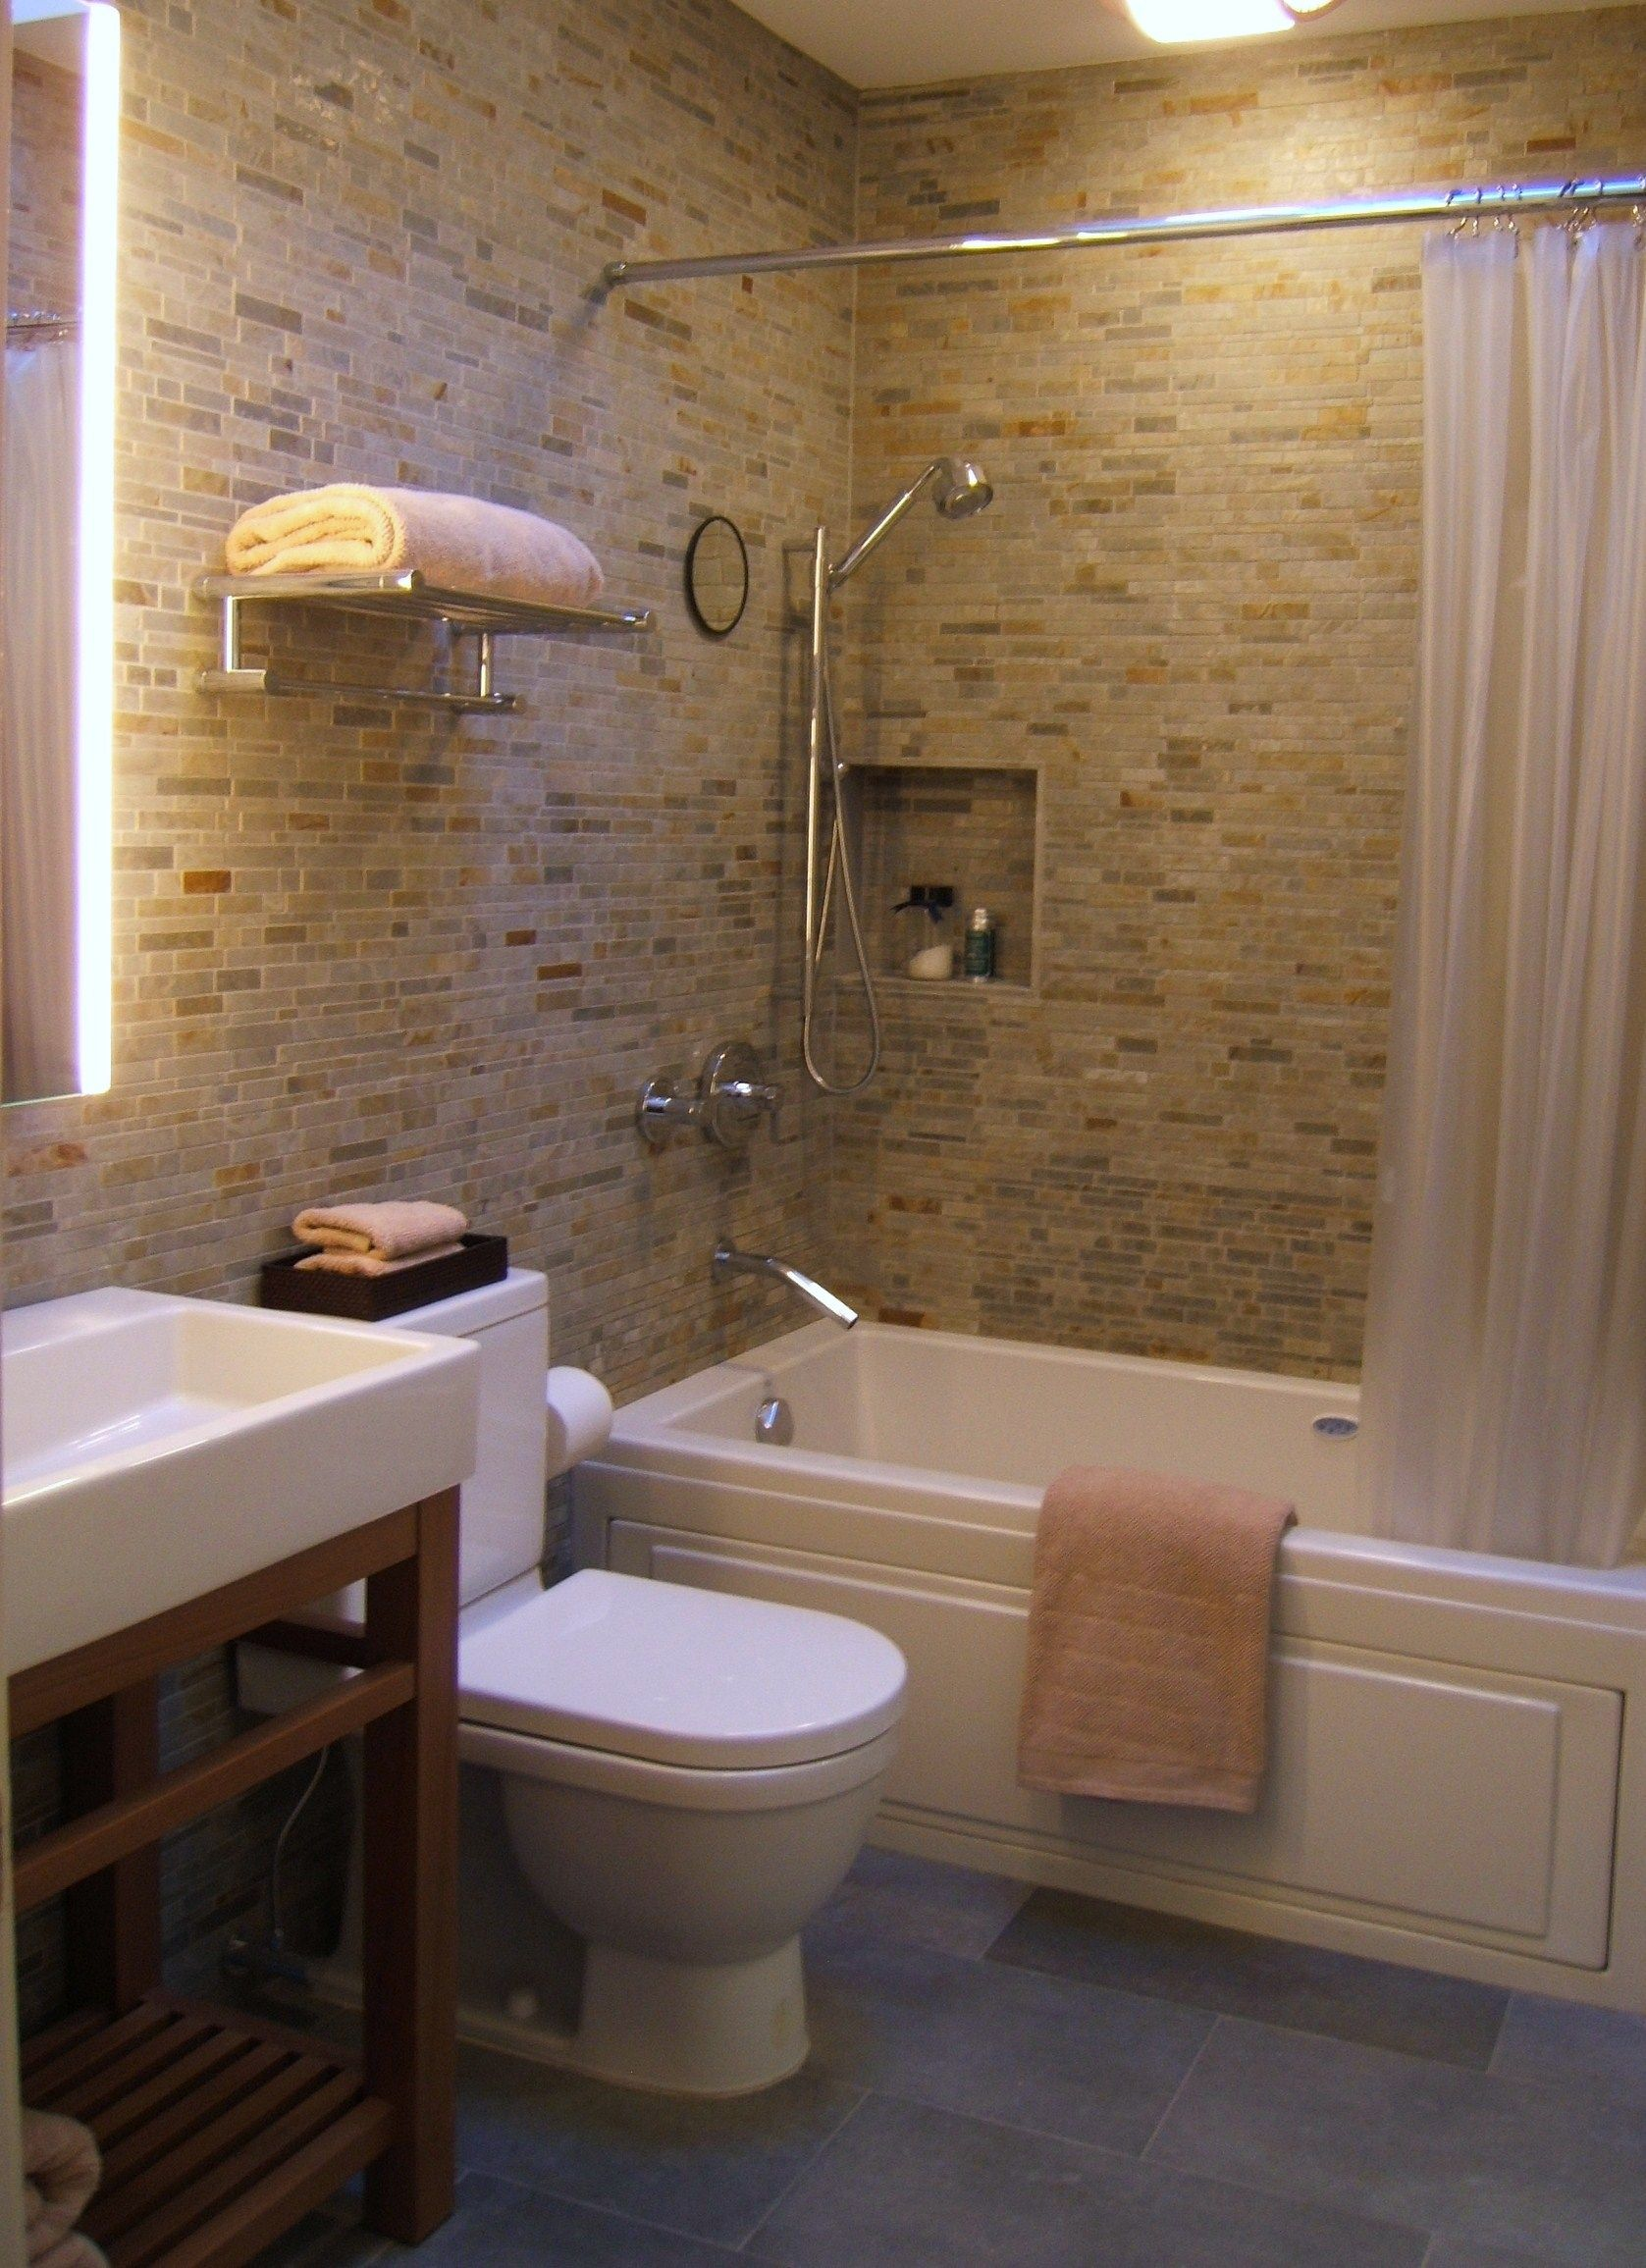 Small Bathroom Designs South Africa Small bathroom